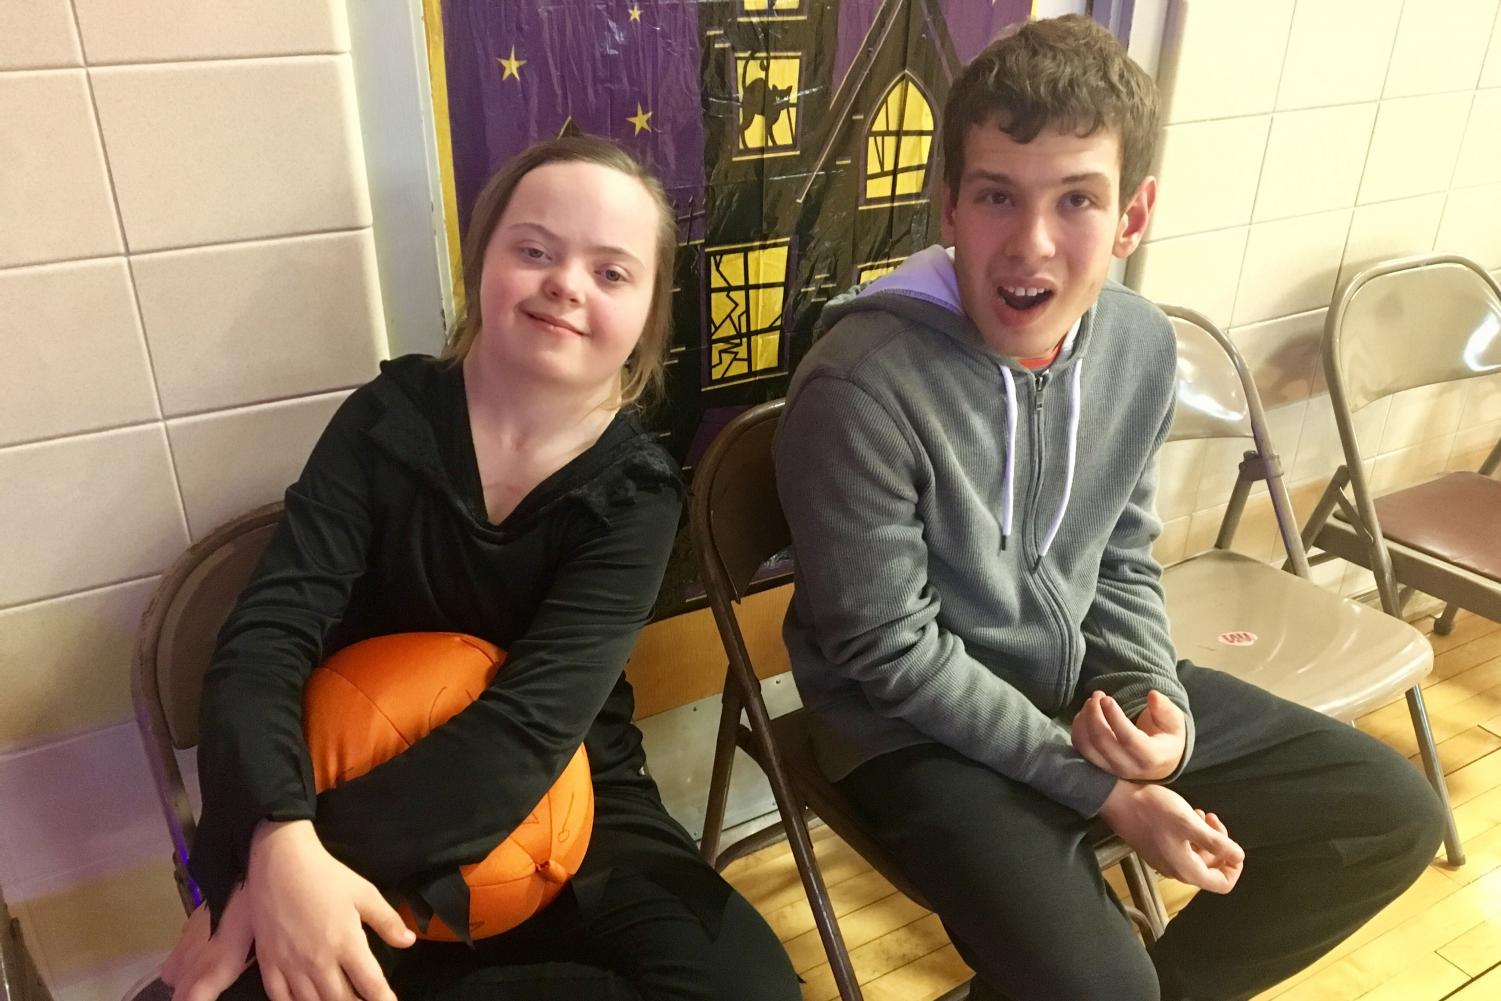 Sophomores Monica Smigleski and Edan Cherrill partake in the Halloween festivities at a dance hosted by Transition Plus Oct. 27. Transition Plus hosts two dances a year for the Special Education programs in the districts it serves.